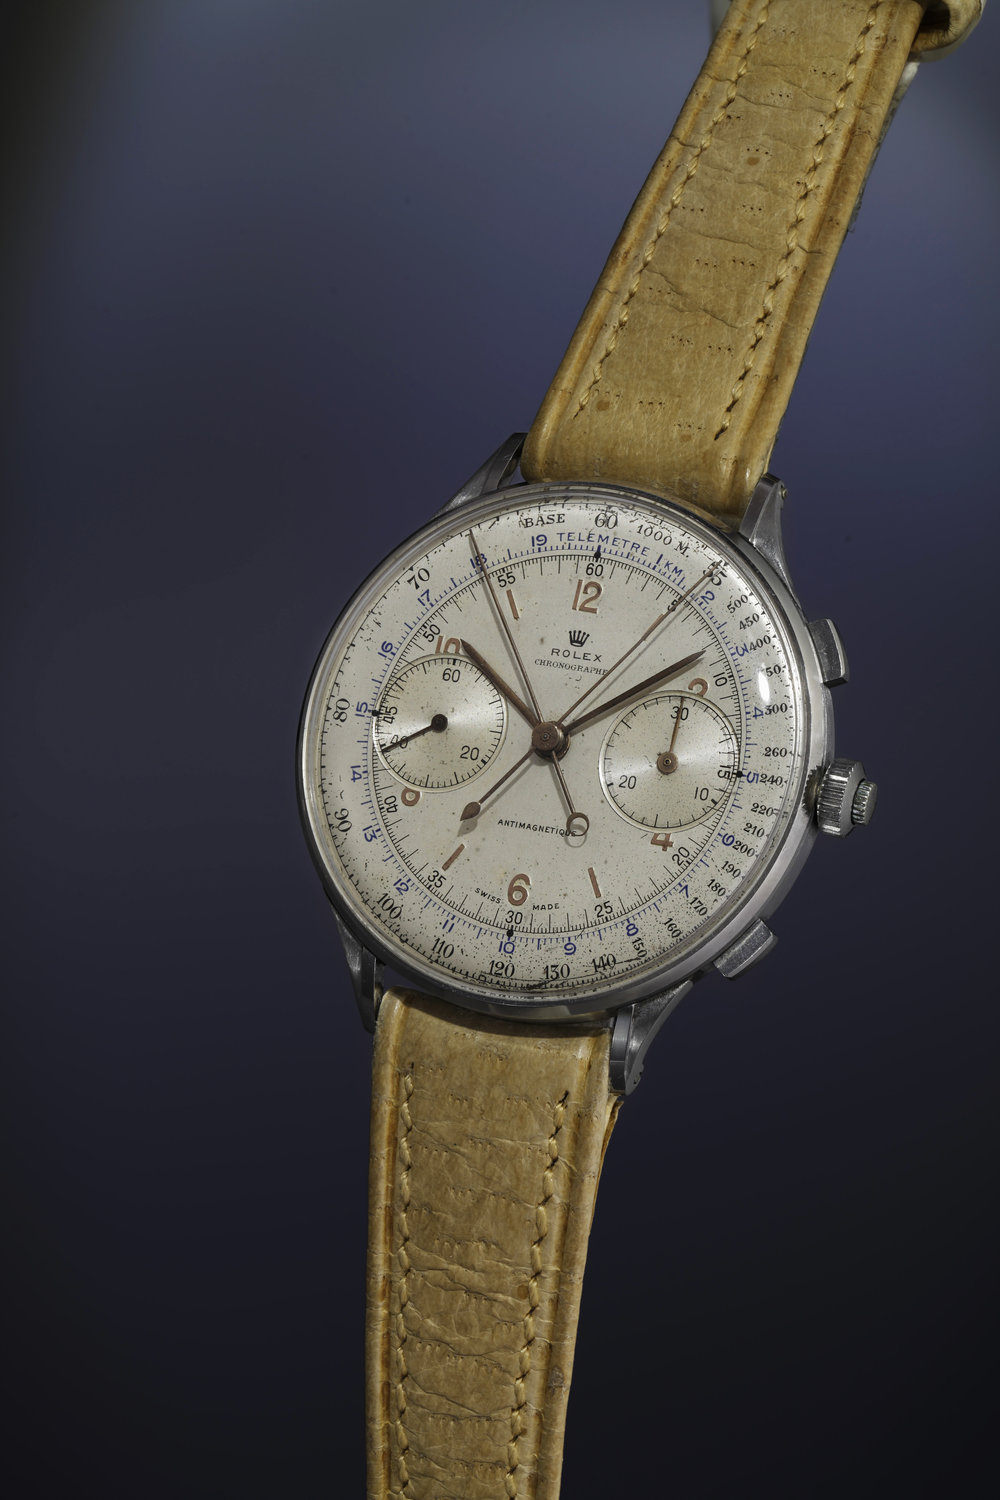 A 1942 Rolex Ref. 4113 Split-Seconds that sold for $1,161,436 in 2013 and $2,405,000 last weekend. Image courtesy of Phillip's